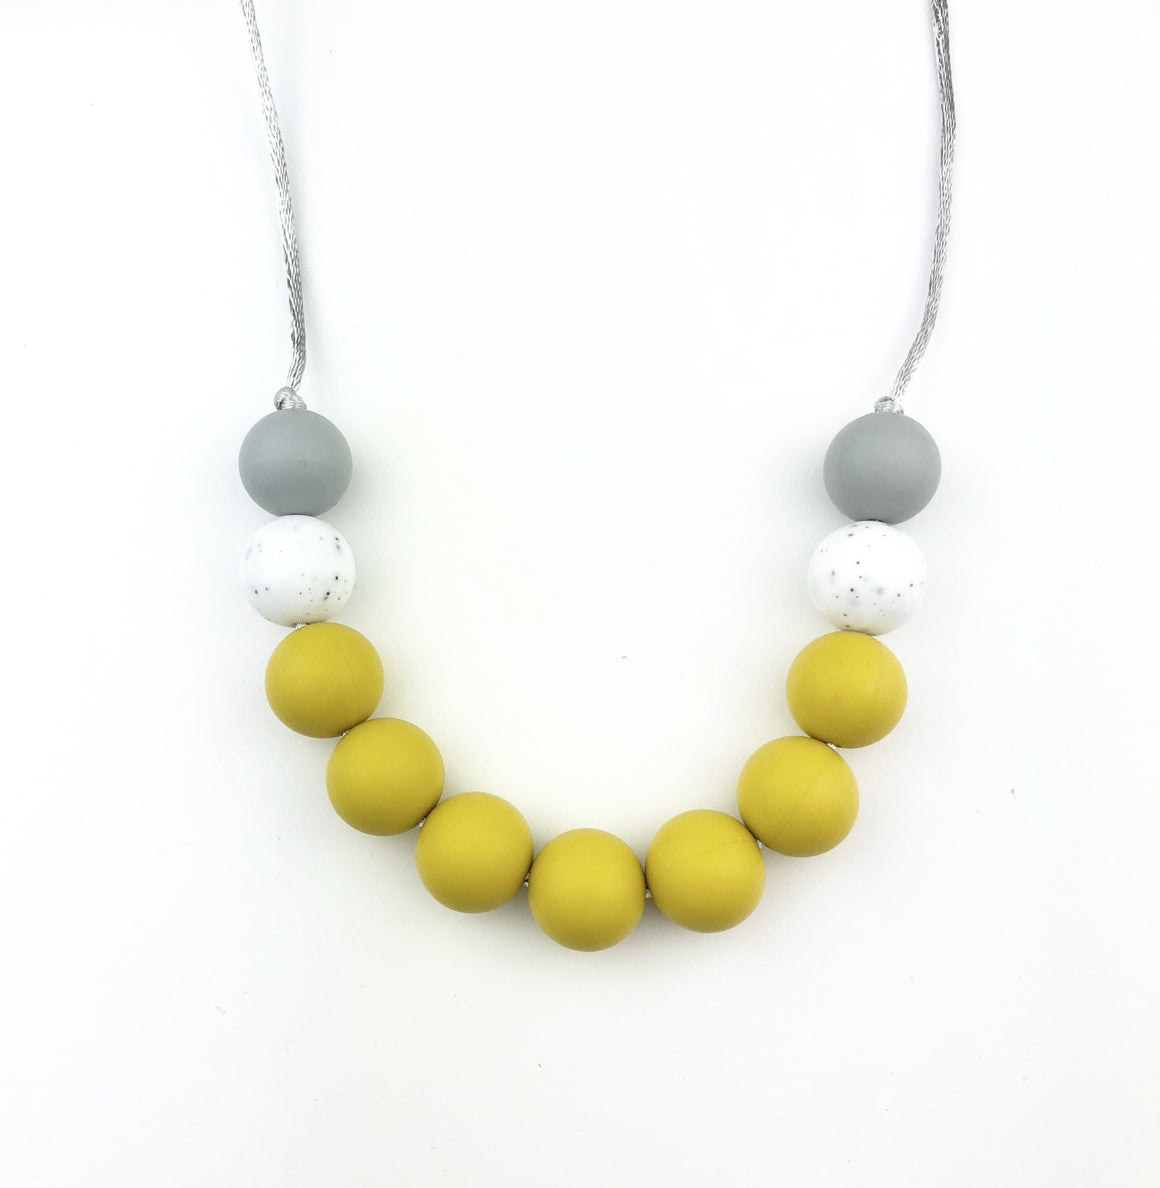 Sydney Mustard Teething Necklace - Sebandroo